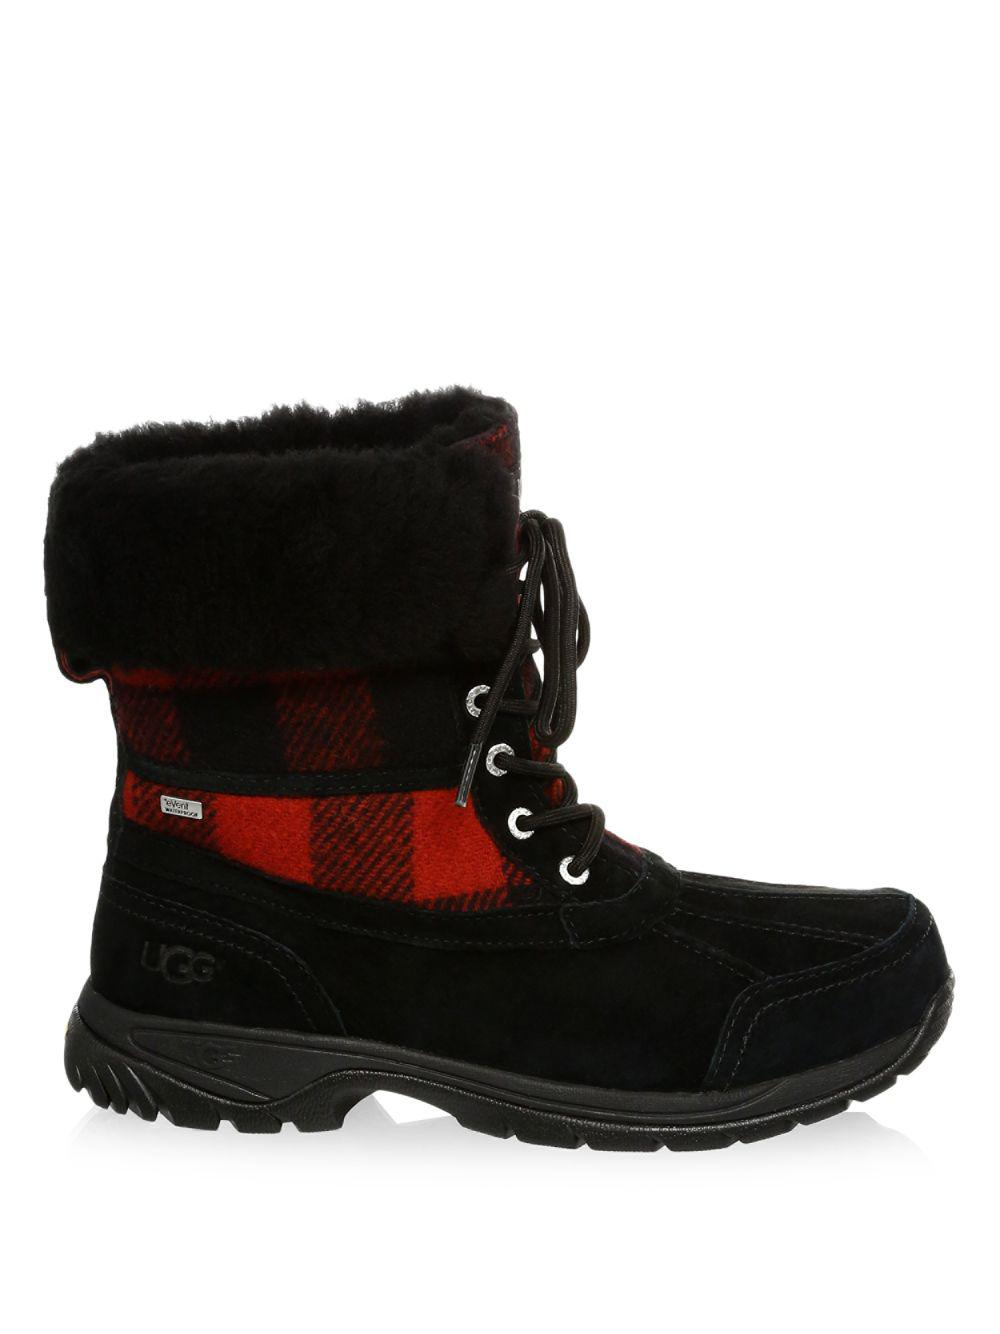 new product bc7a1 d55a0 Women's Black Butte Waterproof Buffalo Check UGGPure Winter Boots